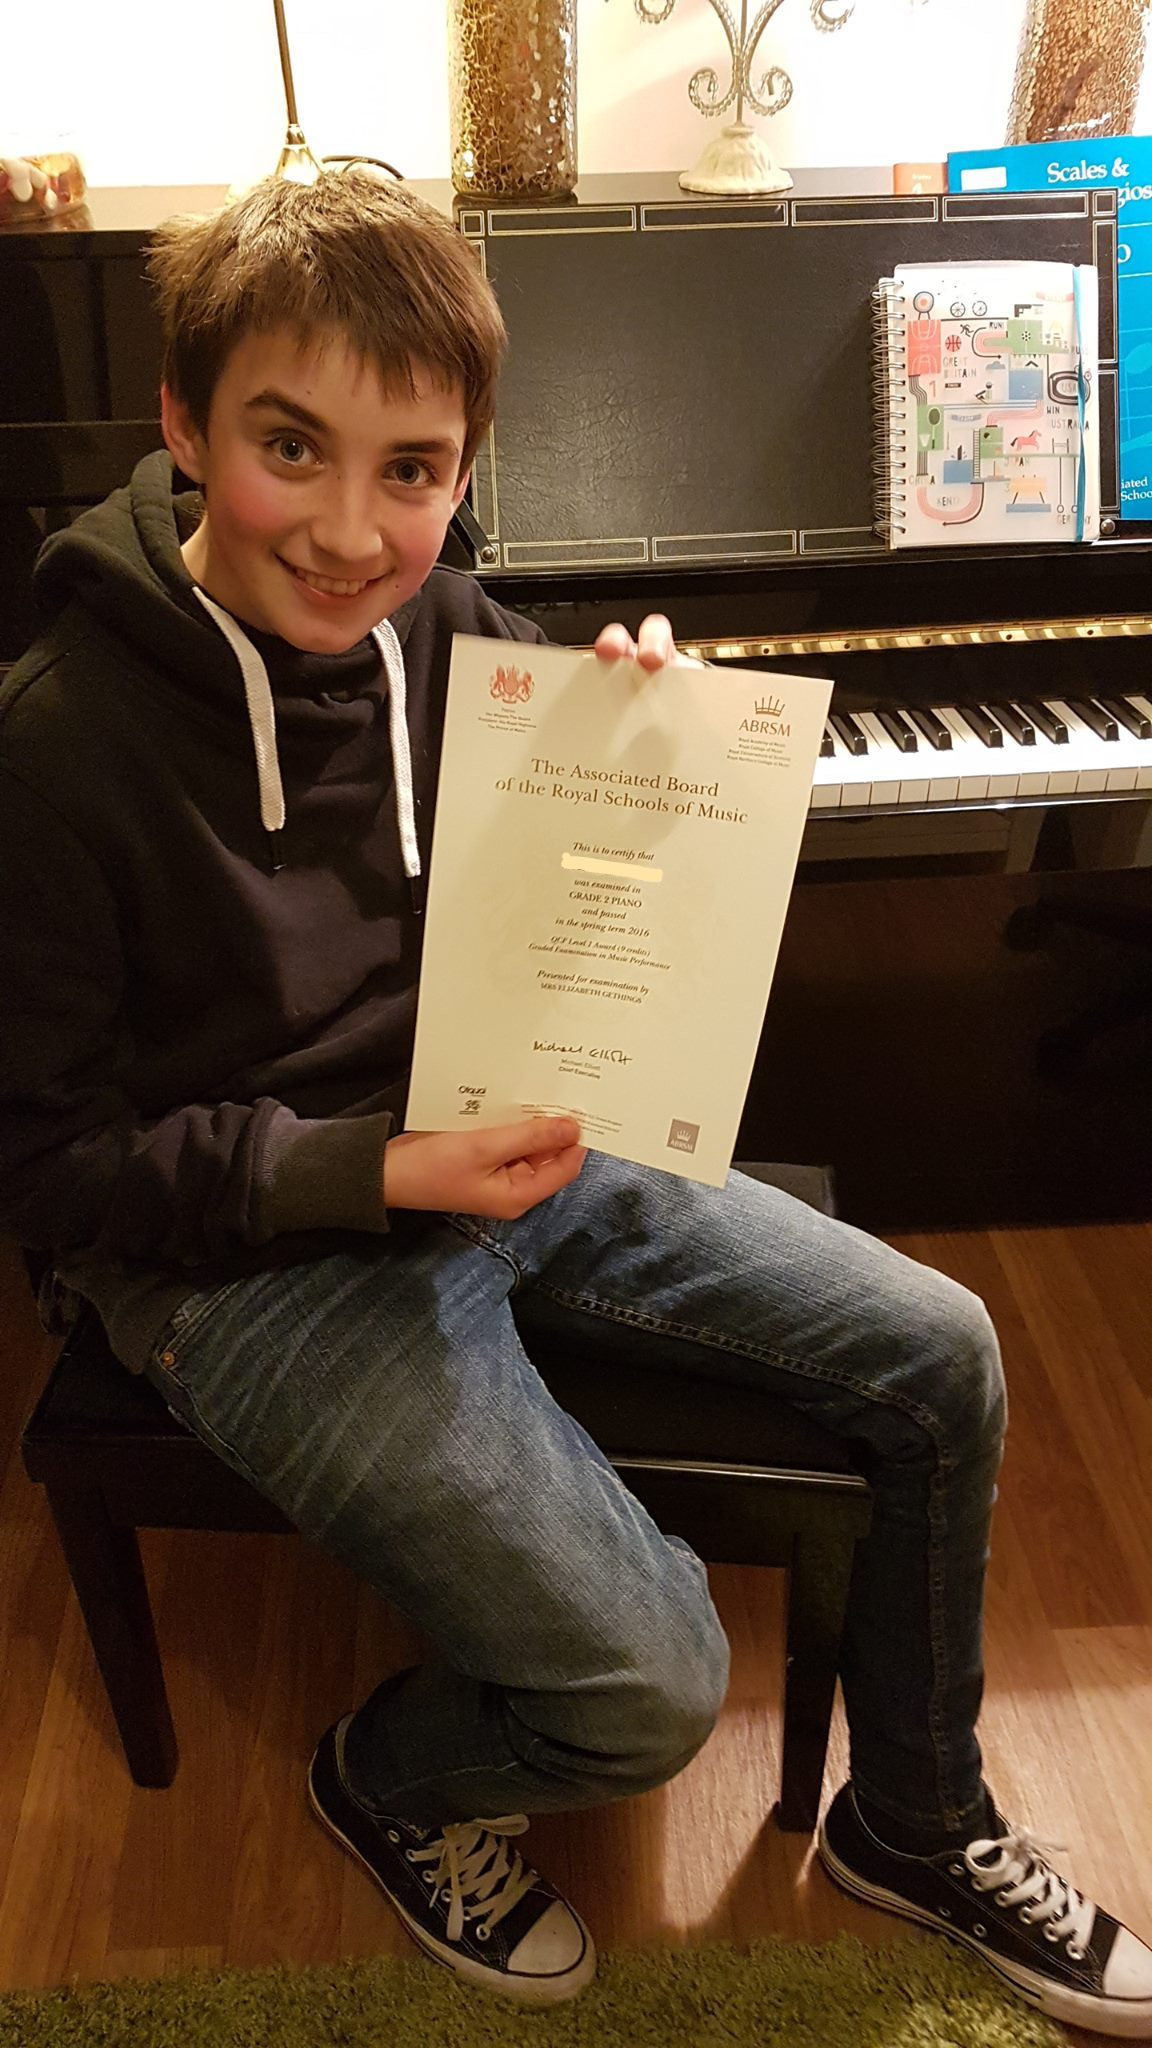 Proud owner of an ABRSM certificate